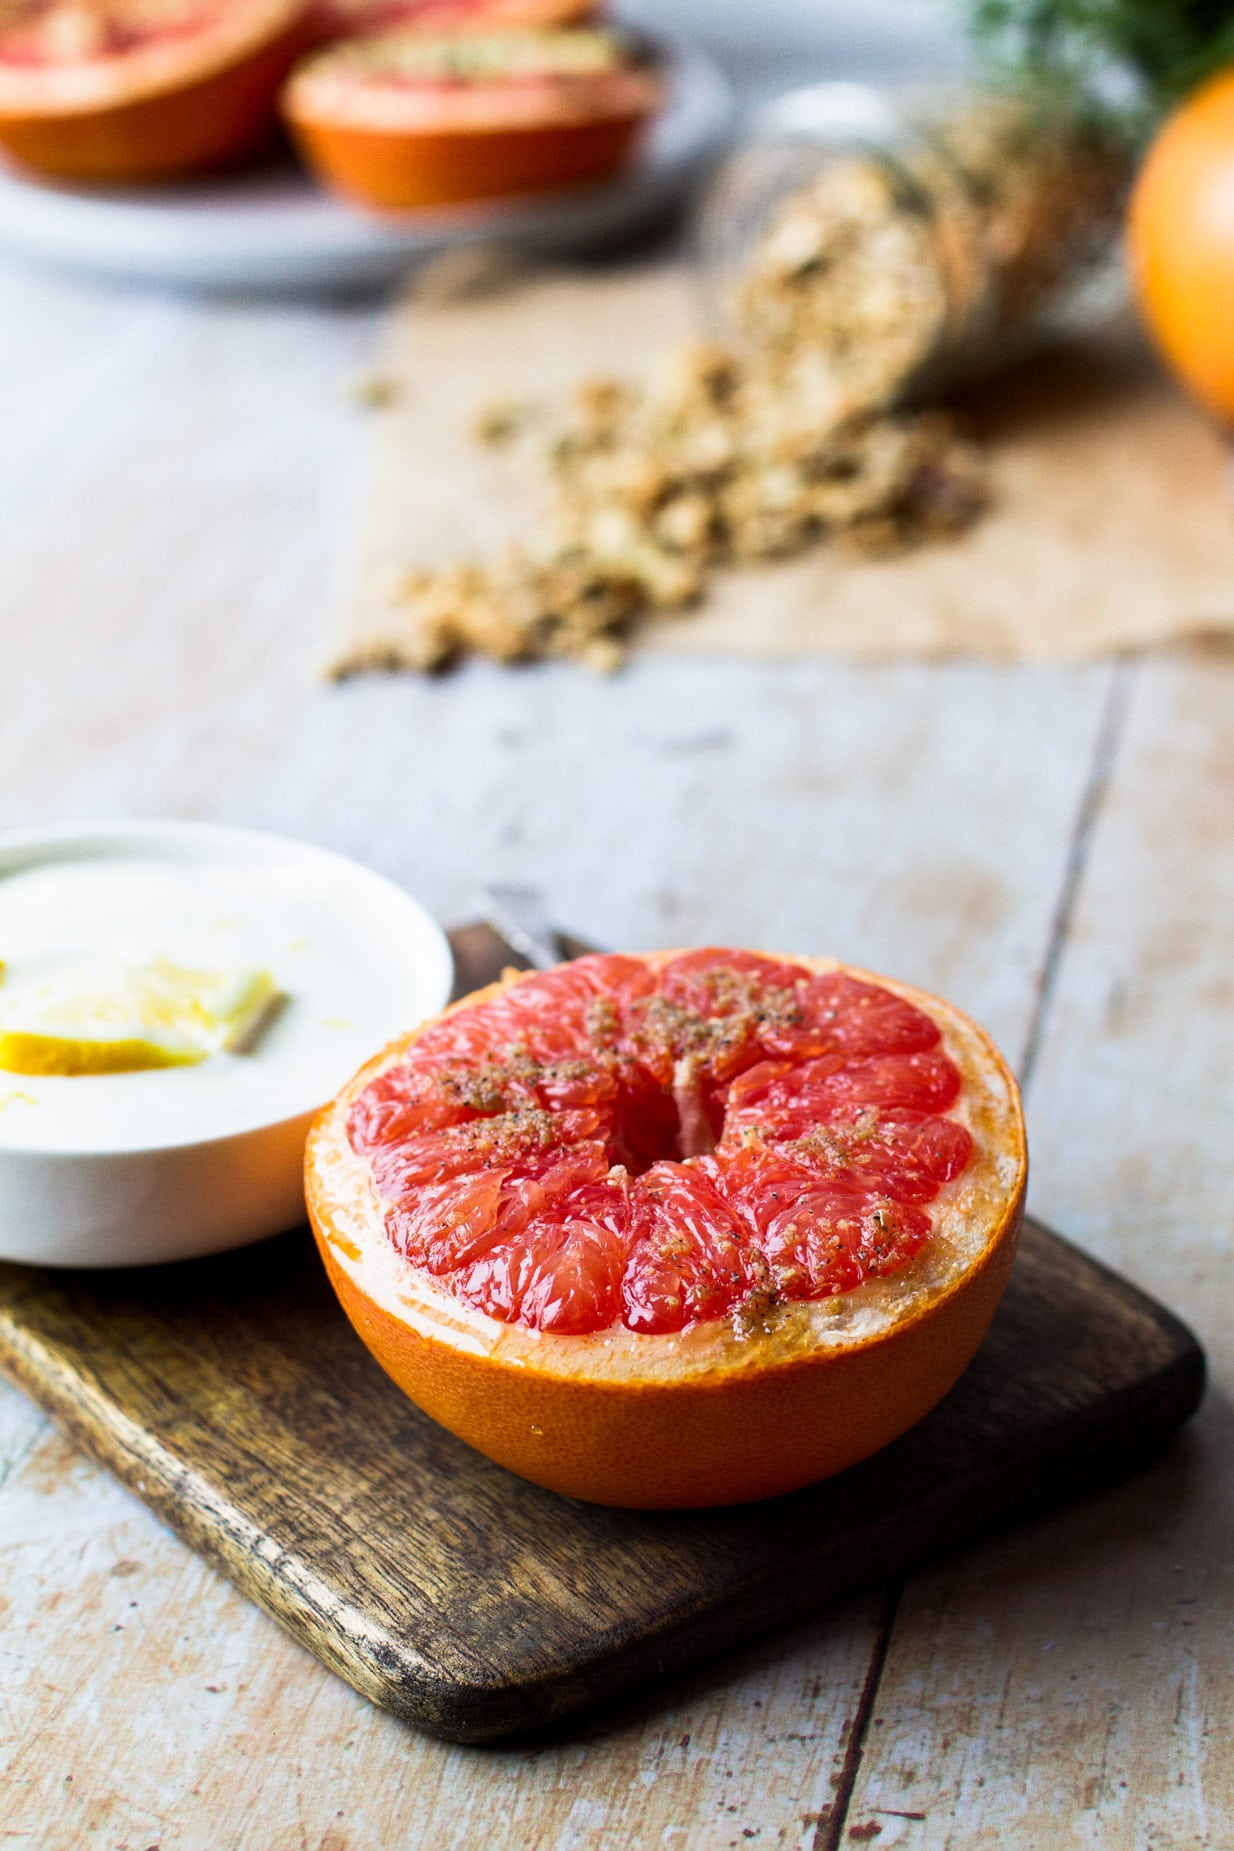 Halved baked grapefruit on a dark wooden tray, white bowl of yoghurt with lemon and a tipped over jar of granola in the background